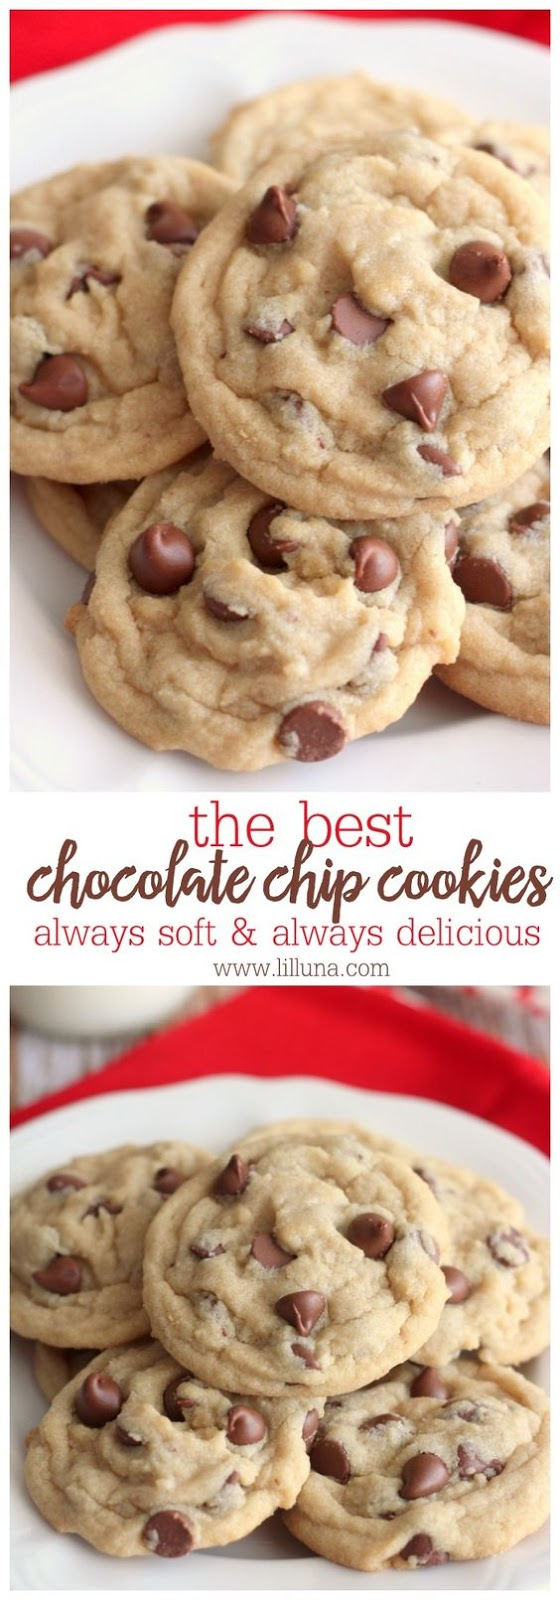 THE BEST CHOCOLATE CHIP COOKIES RECIPE #chocolate #chocolatechip #cookies #cookiesrecipes #chocolatechipcookies